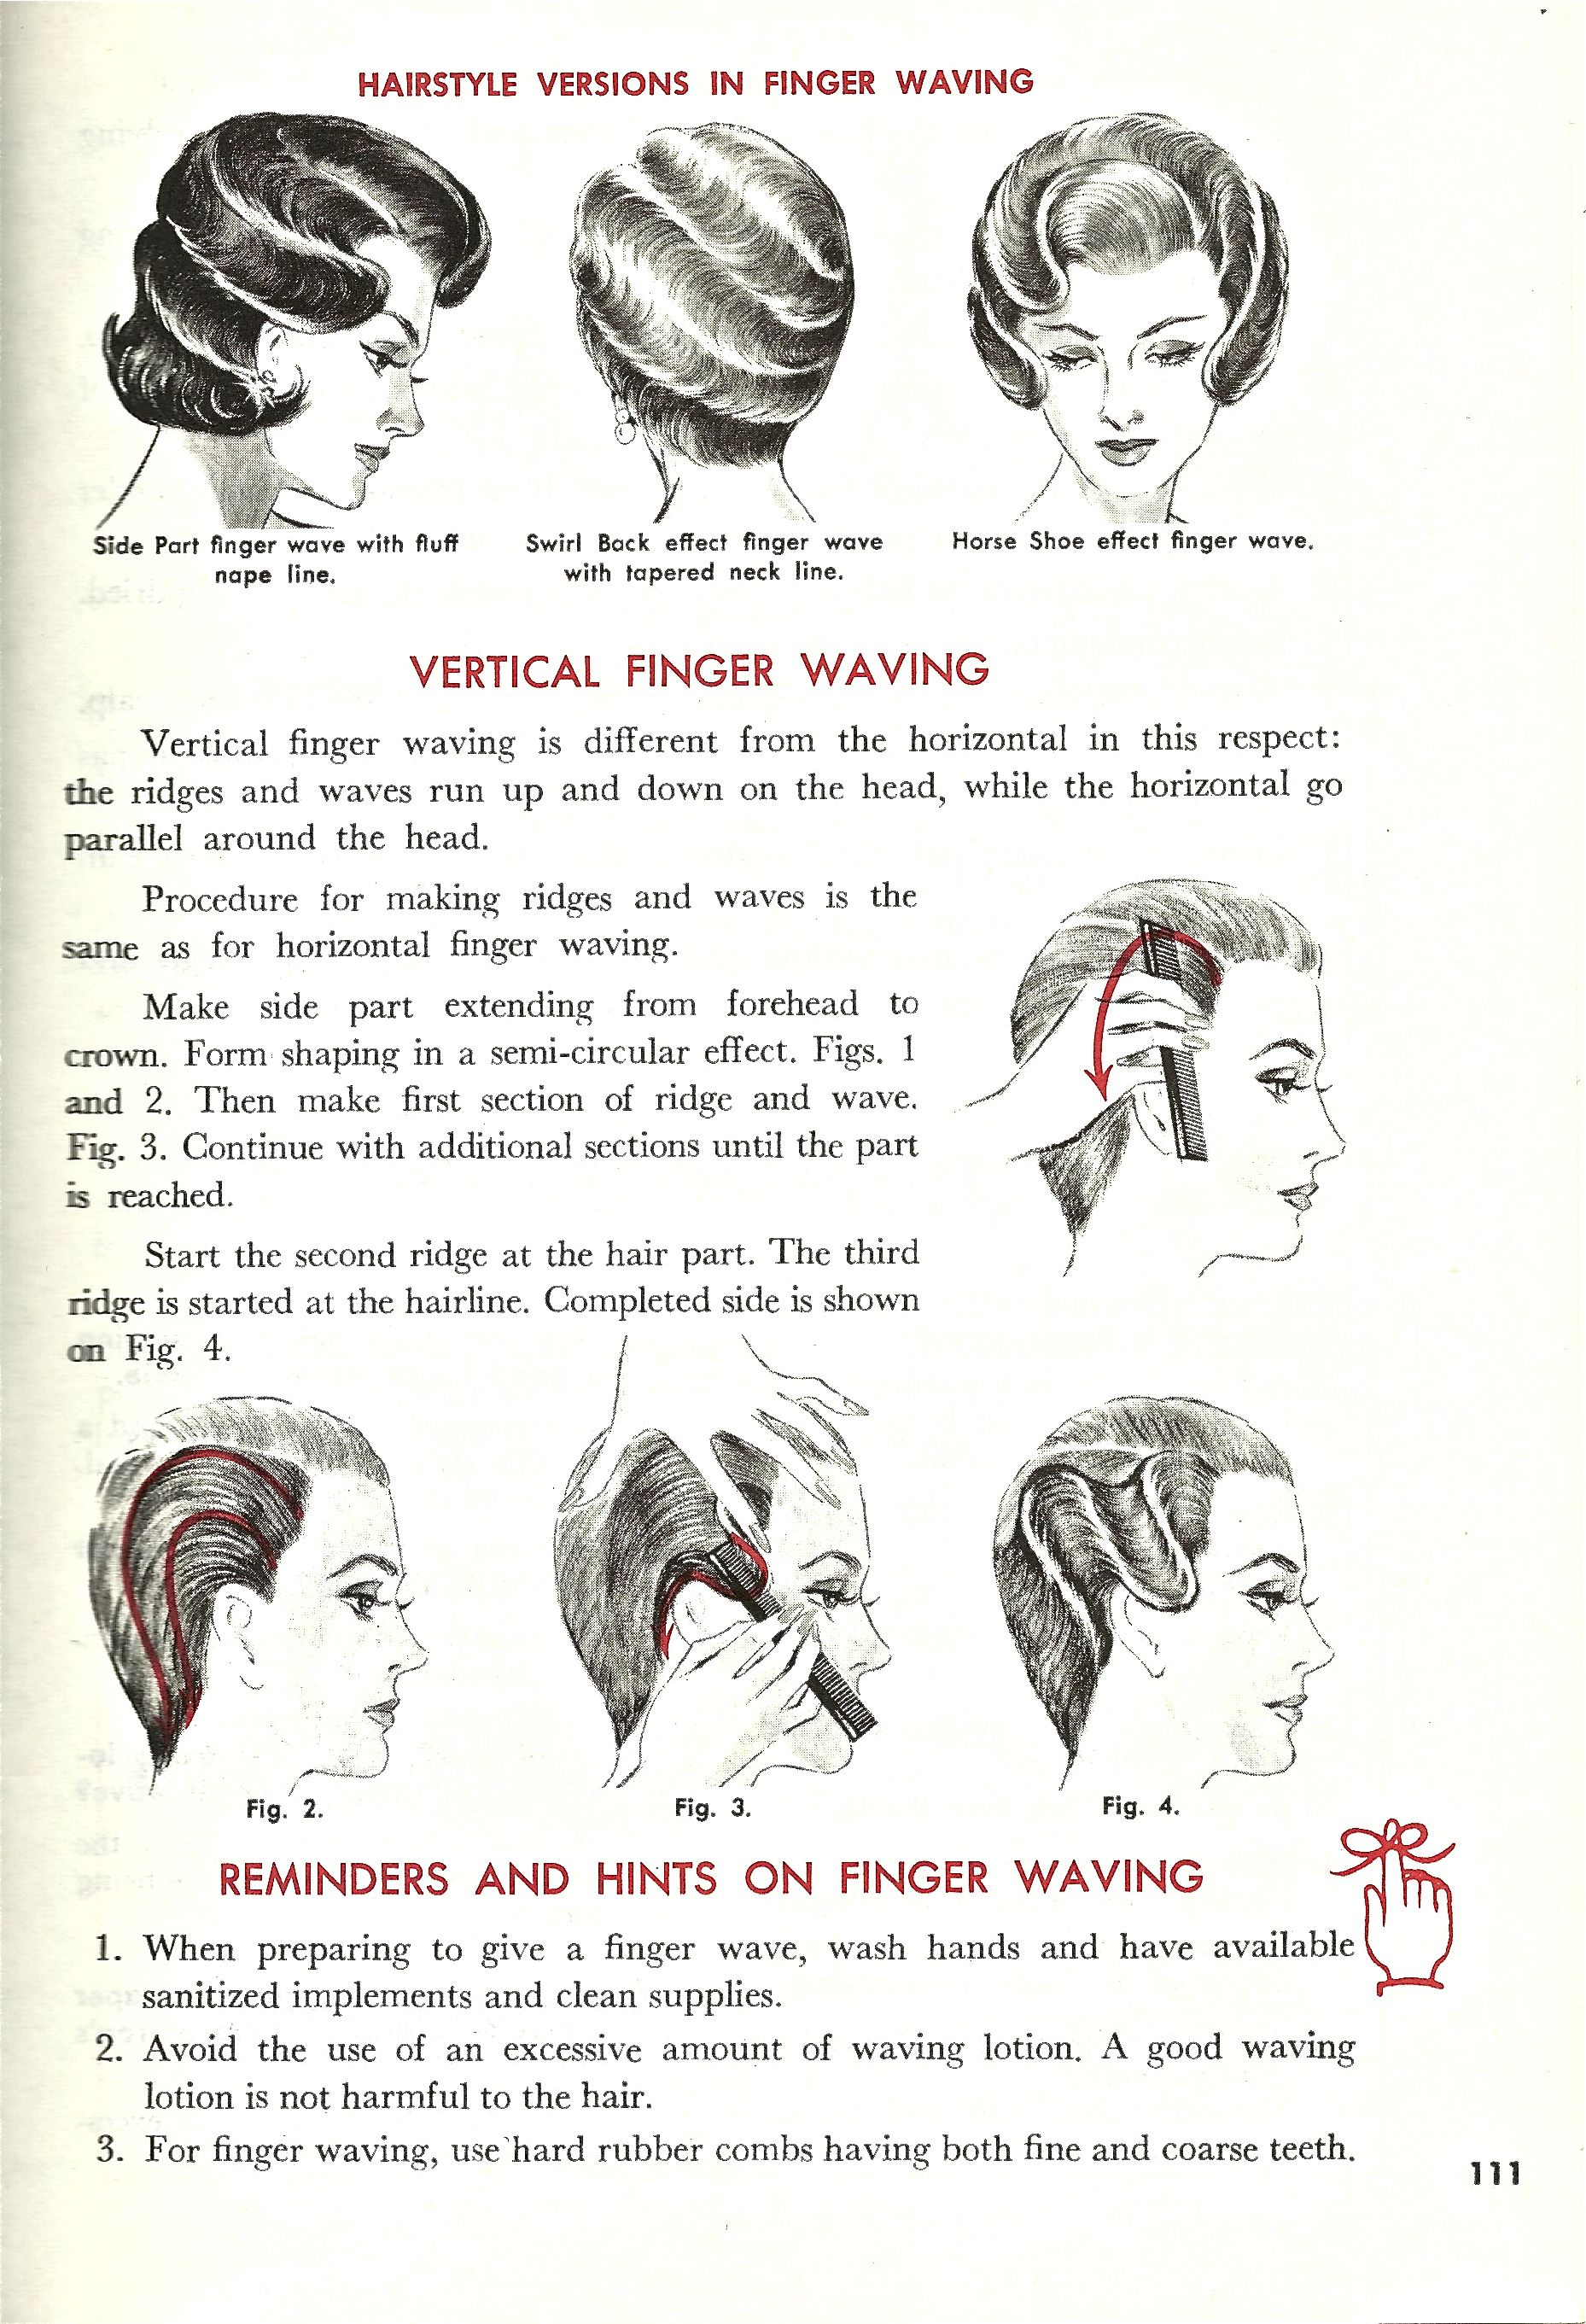 Vintage Finger Waving Instructional Never Underestimate A Good Finer Wave Repin Like And Comment Vintage Hairstyles Finger Waves Hair Hacks